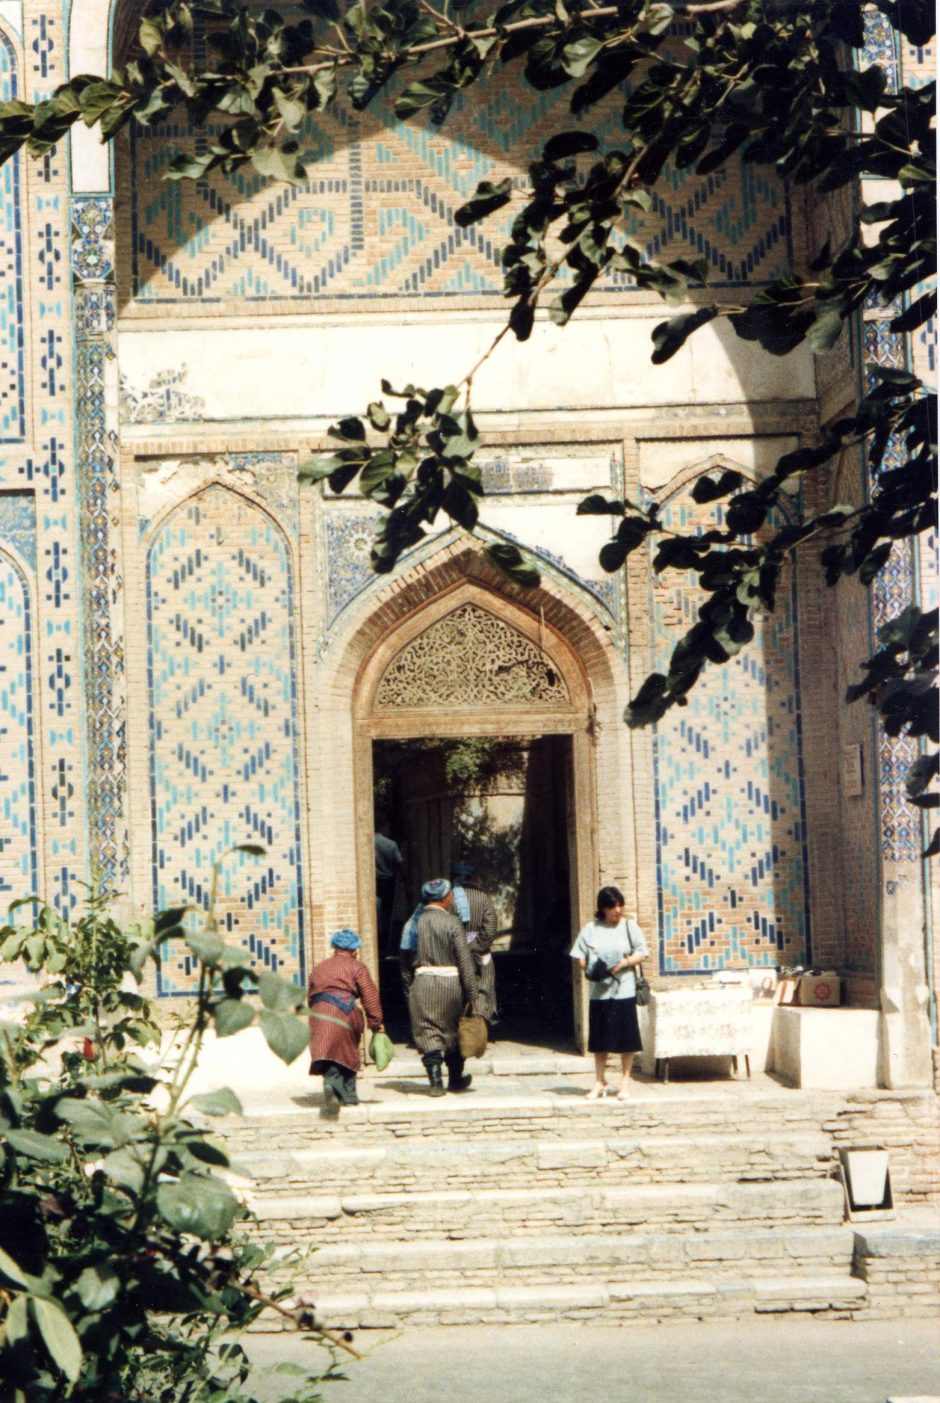 Locals entering mosque